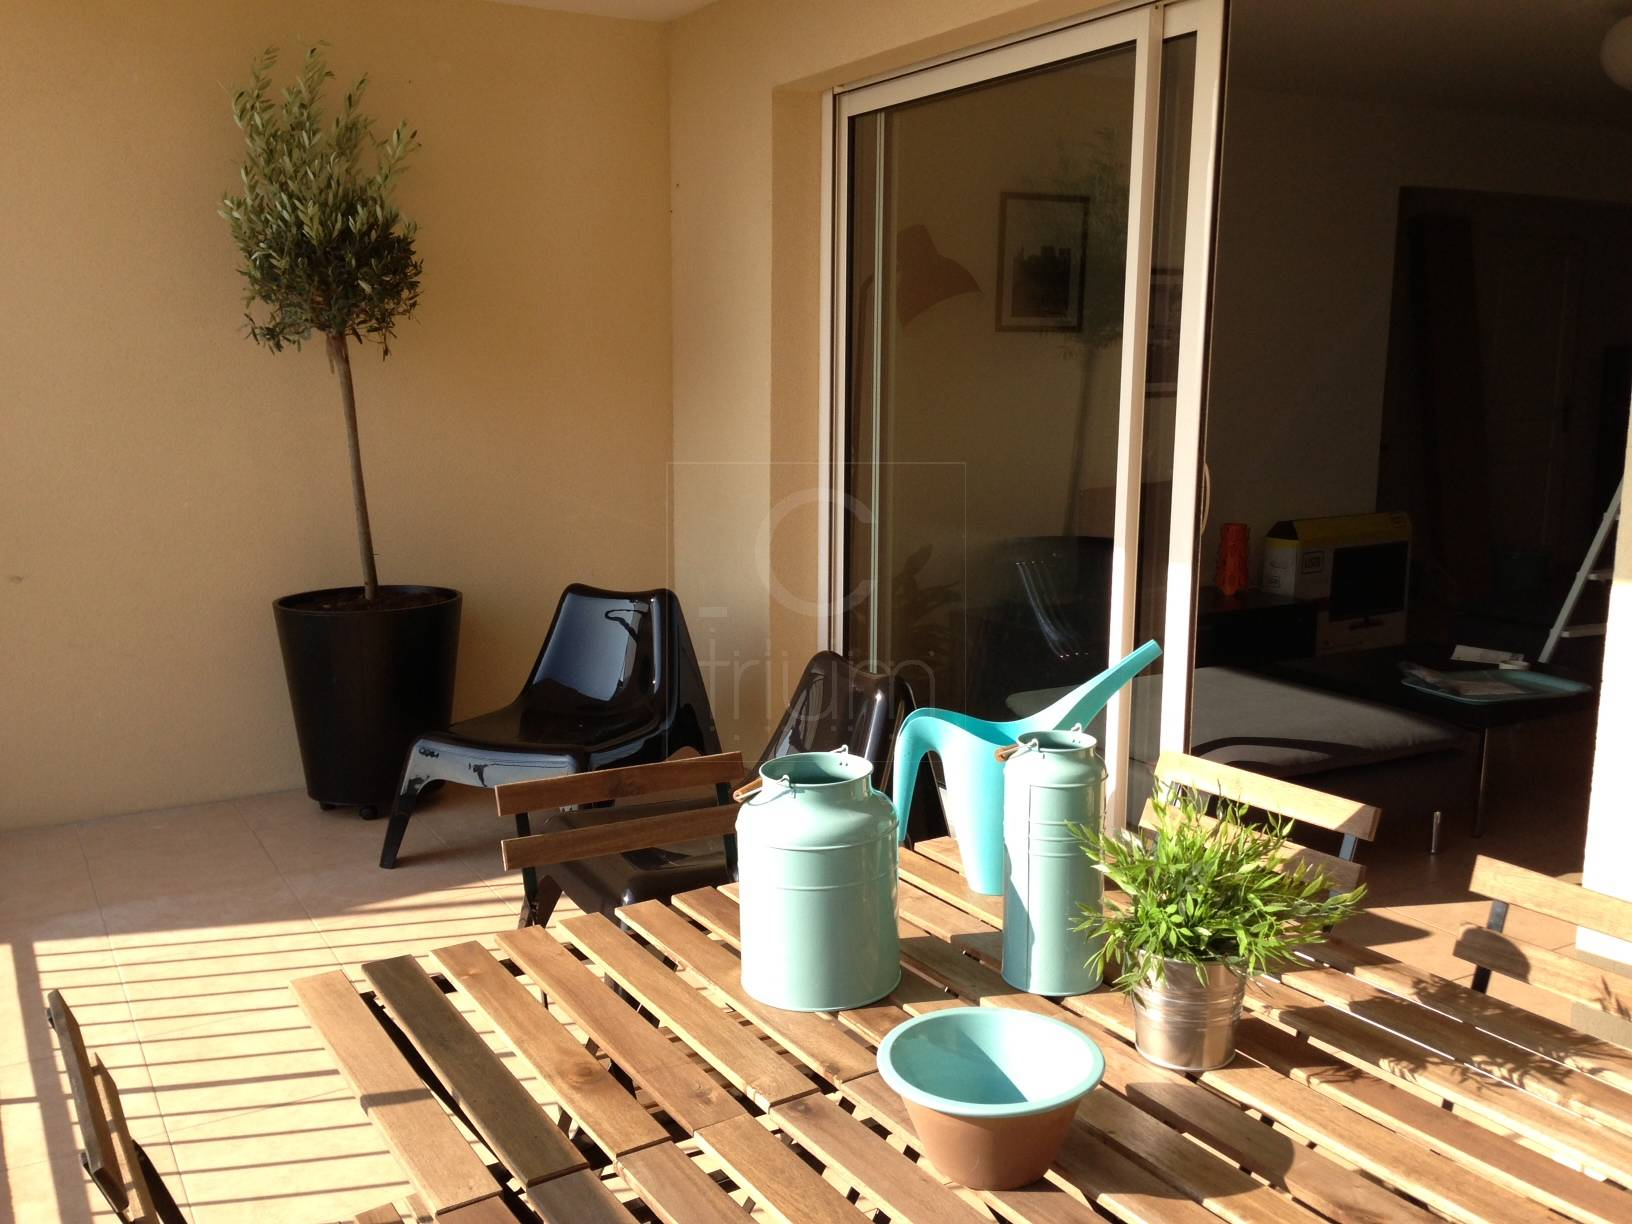 Location appartement t4 f4 marseille 7eme bompard terrasse for Location garage marseille 7eme